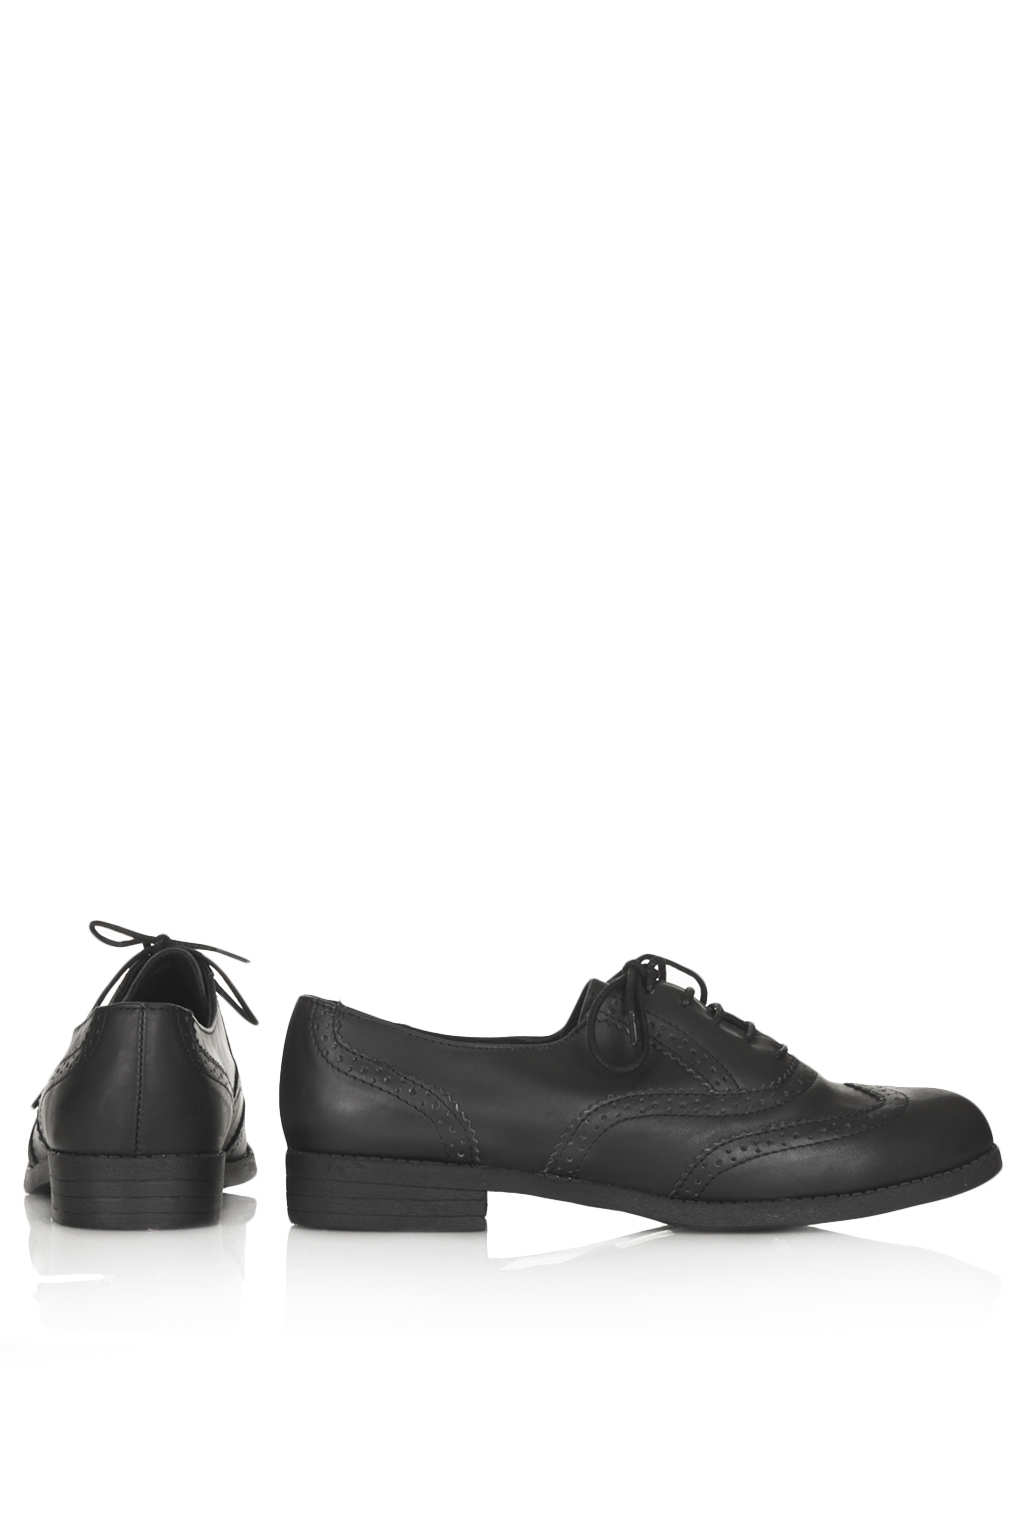 topshop multiply brogue lace up shoes in black lyst